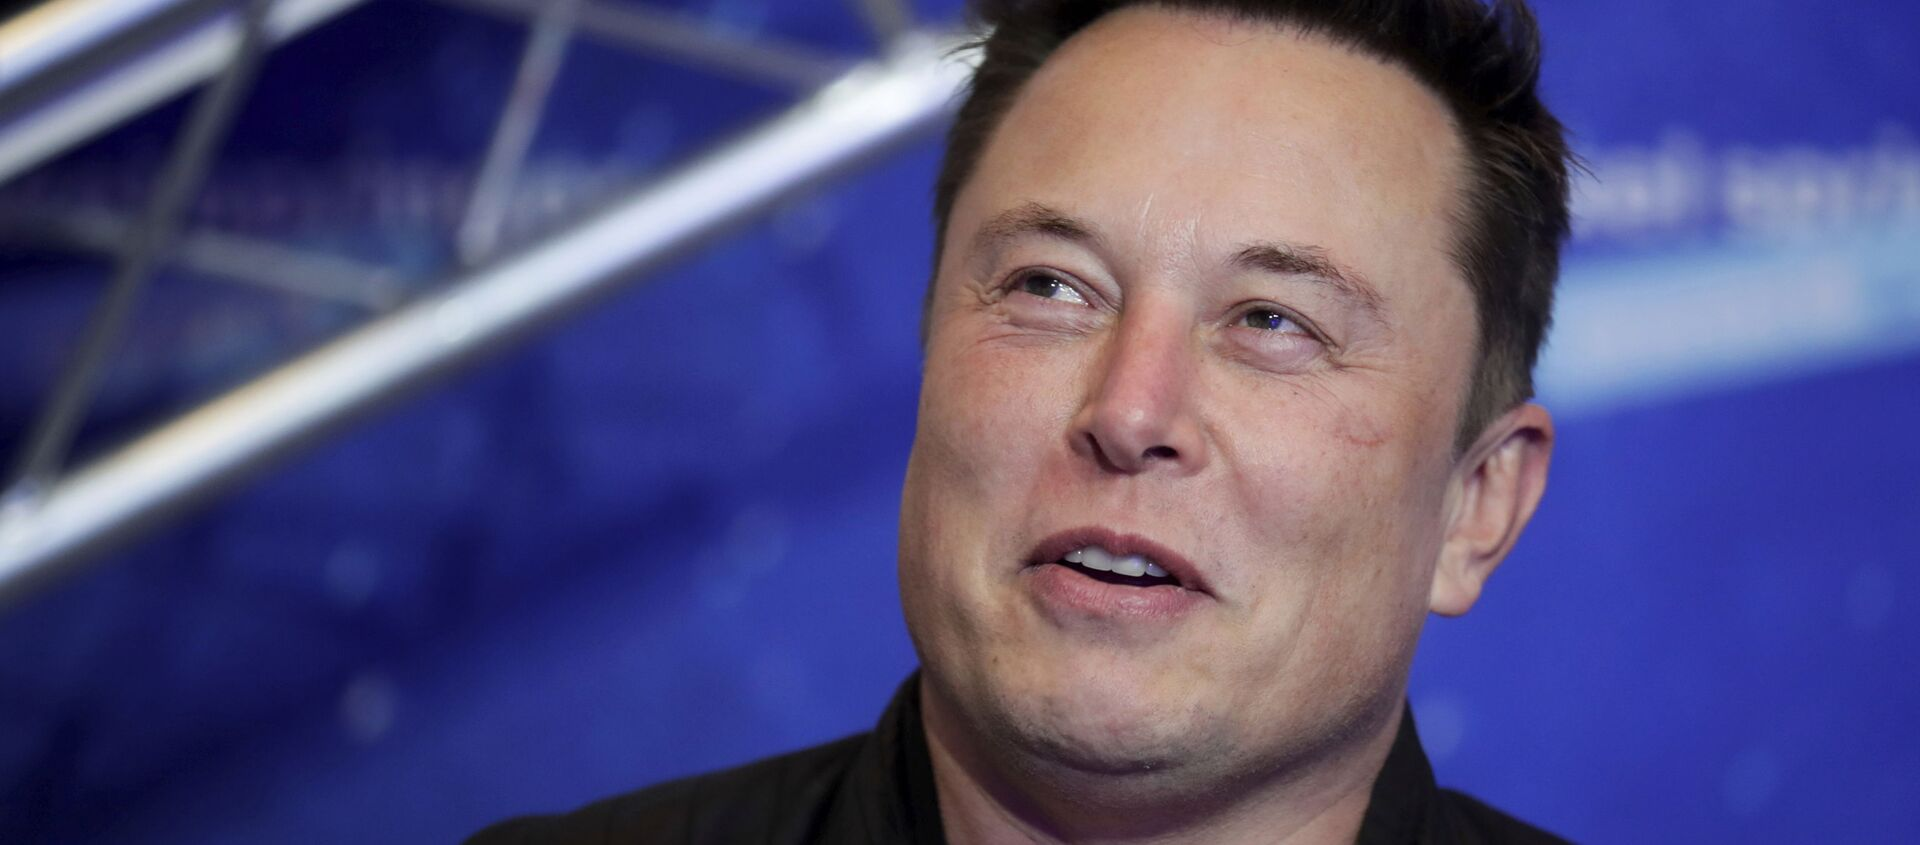 SpaceX owner and Tesla CEO Elon Musk arrives on the red carpet for the Axel Springer media award, in Berlin, Germany, Tuesday, Dec. 1, 2020. - Sputnik International, 1920, 22.05.2021